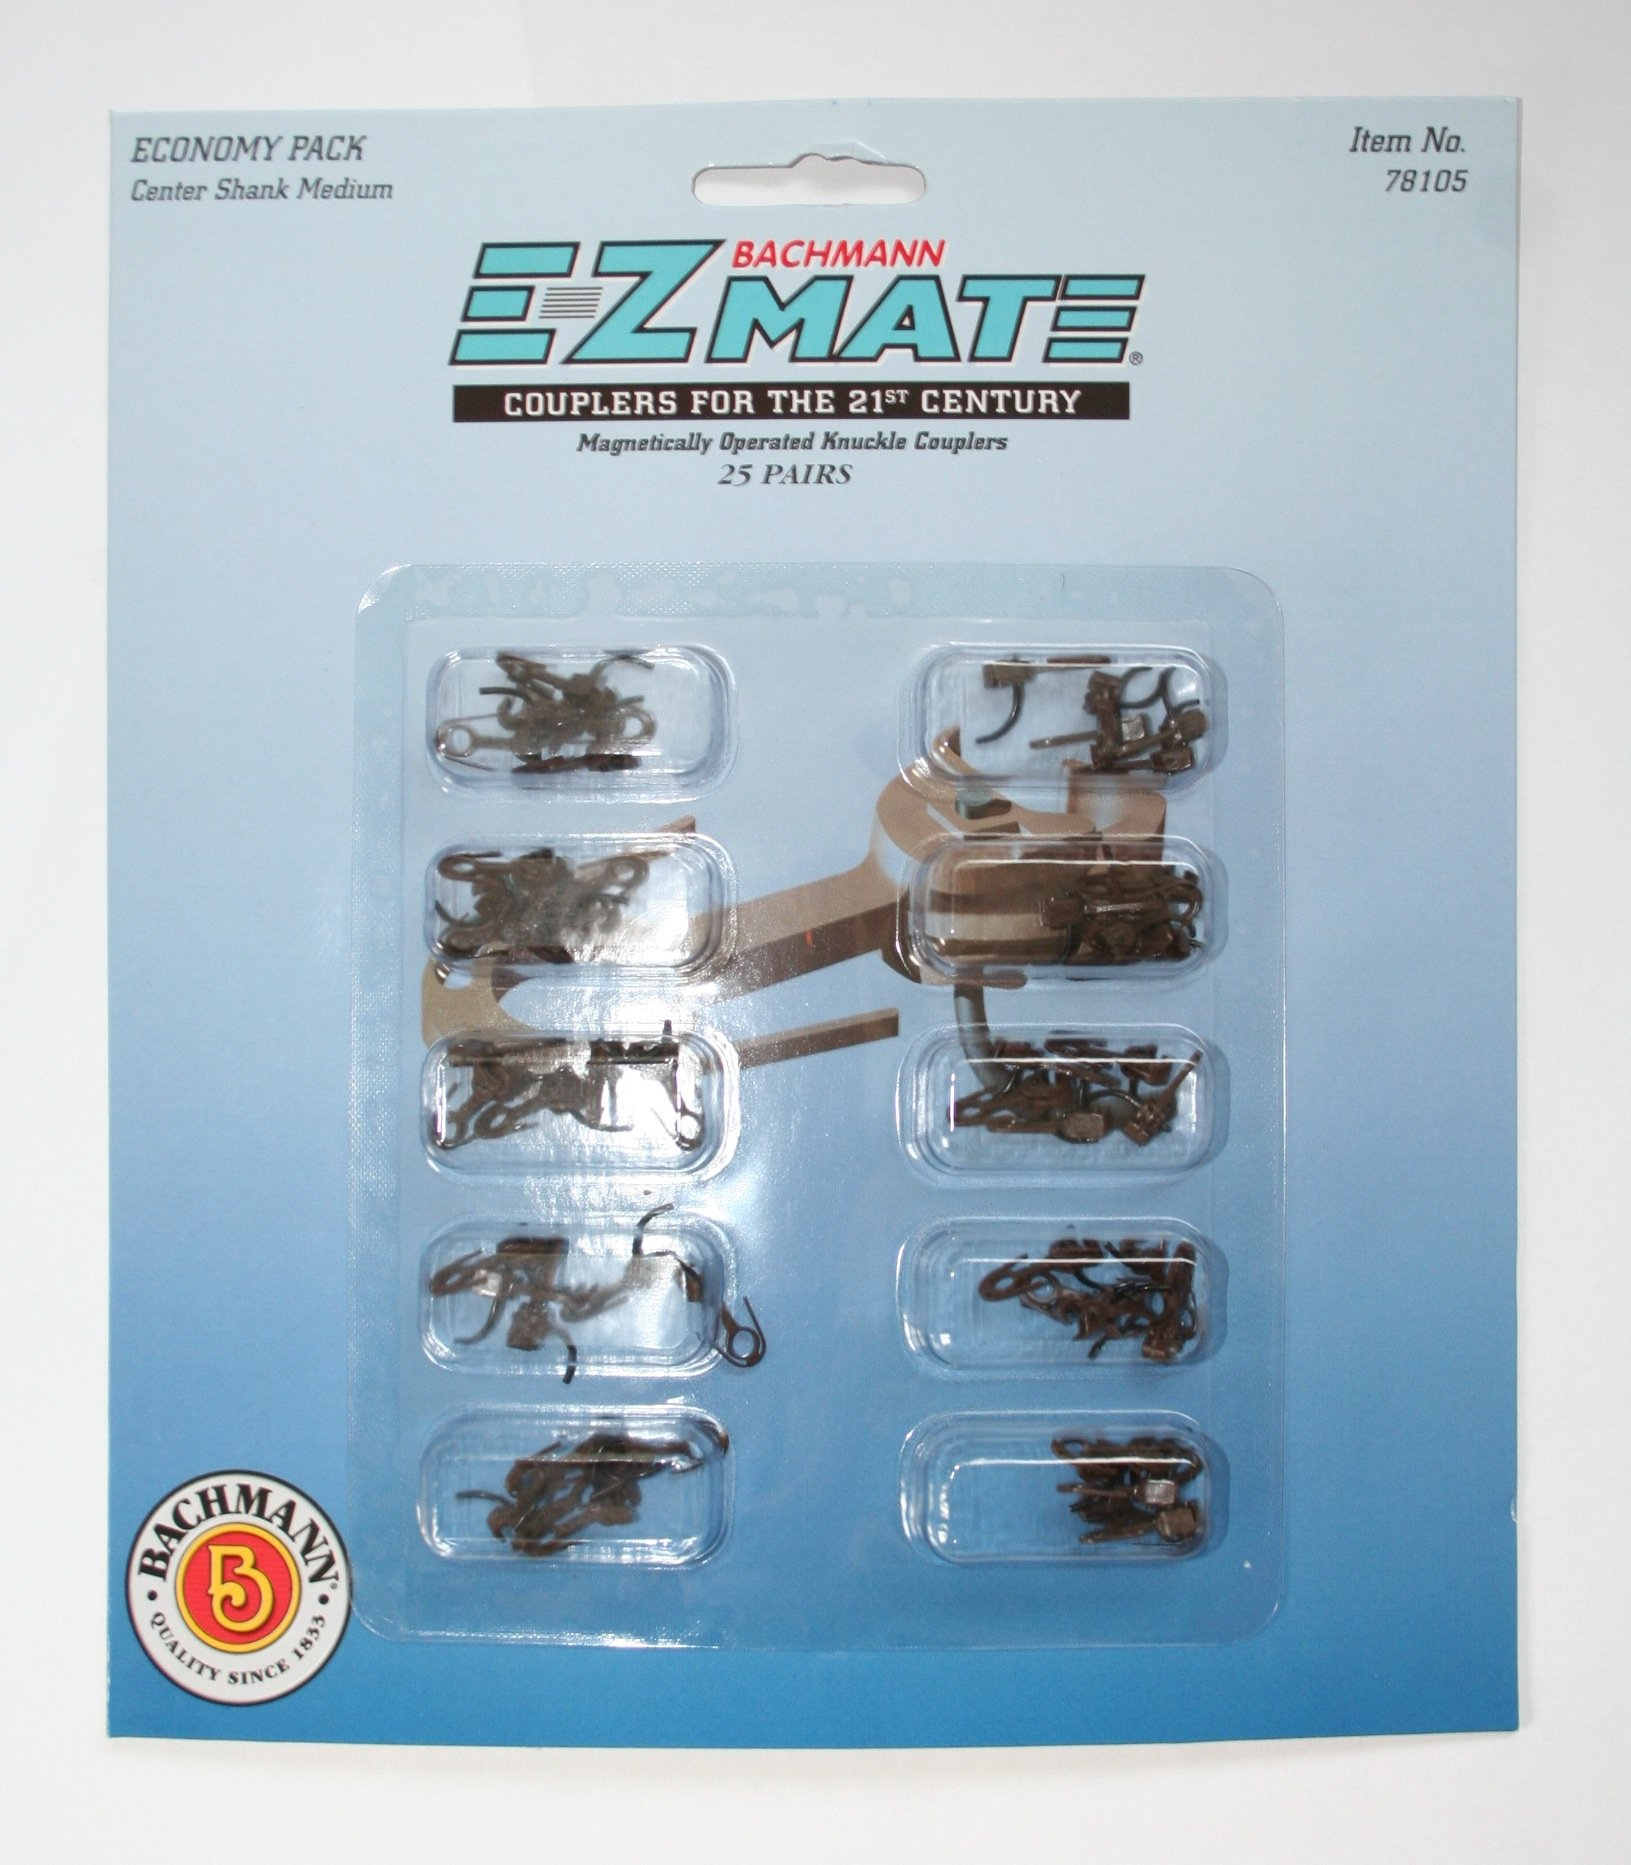 Bachmann Trains E - Z Mate Mark II Magnetic Knuckle Couplers with Metal Coil Spring  - Economy Pack  - Center Shank - Medium (25 Coupler pairs per card) - HO Scale